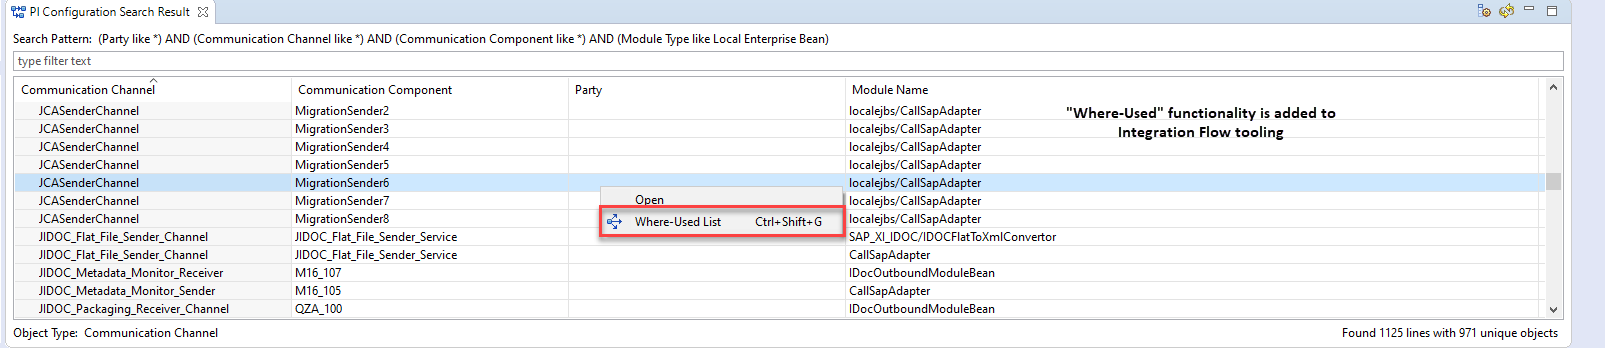 Where-Used%20List%20functionality%20added%20to%20Integration%20Designer